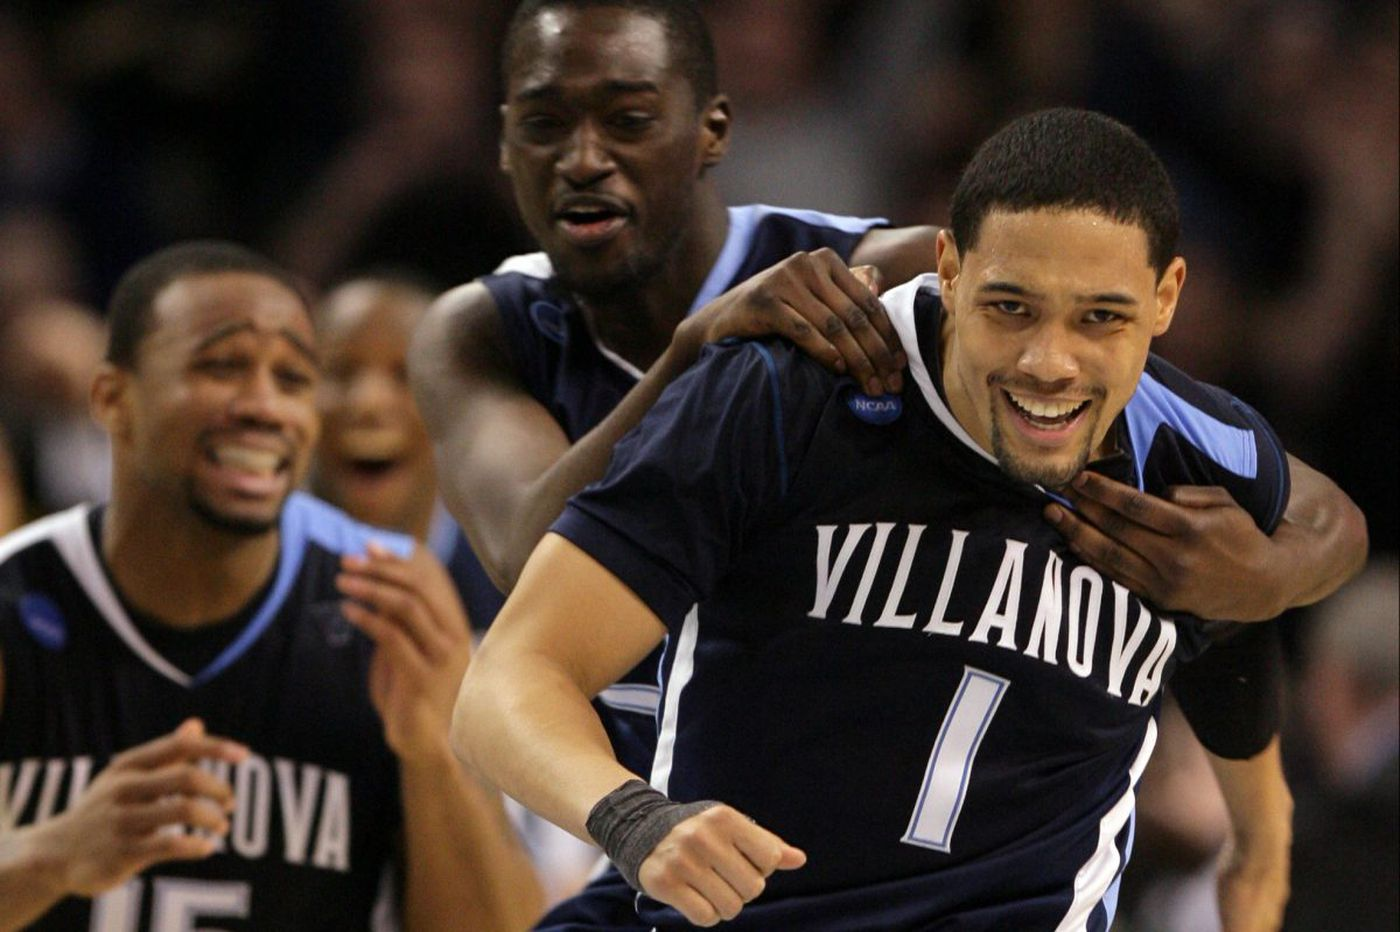 How Villanova and Pitt's divergent paths since 2009 Final Four have defined them | Mike Jensen